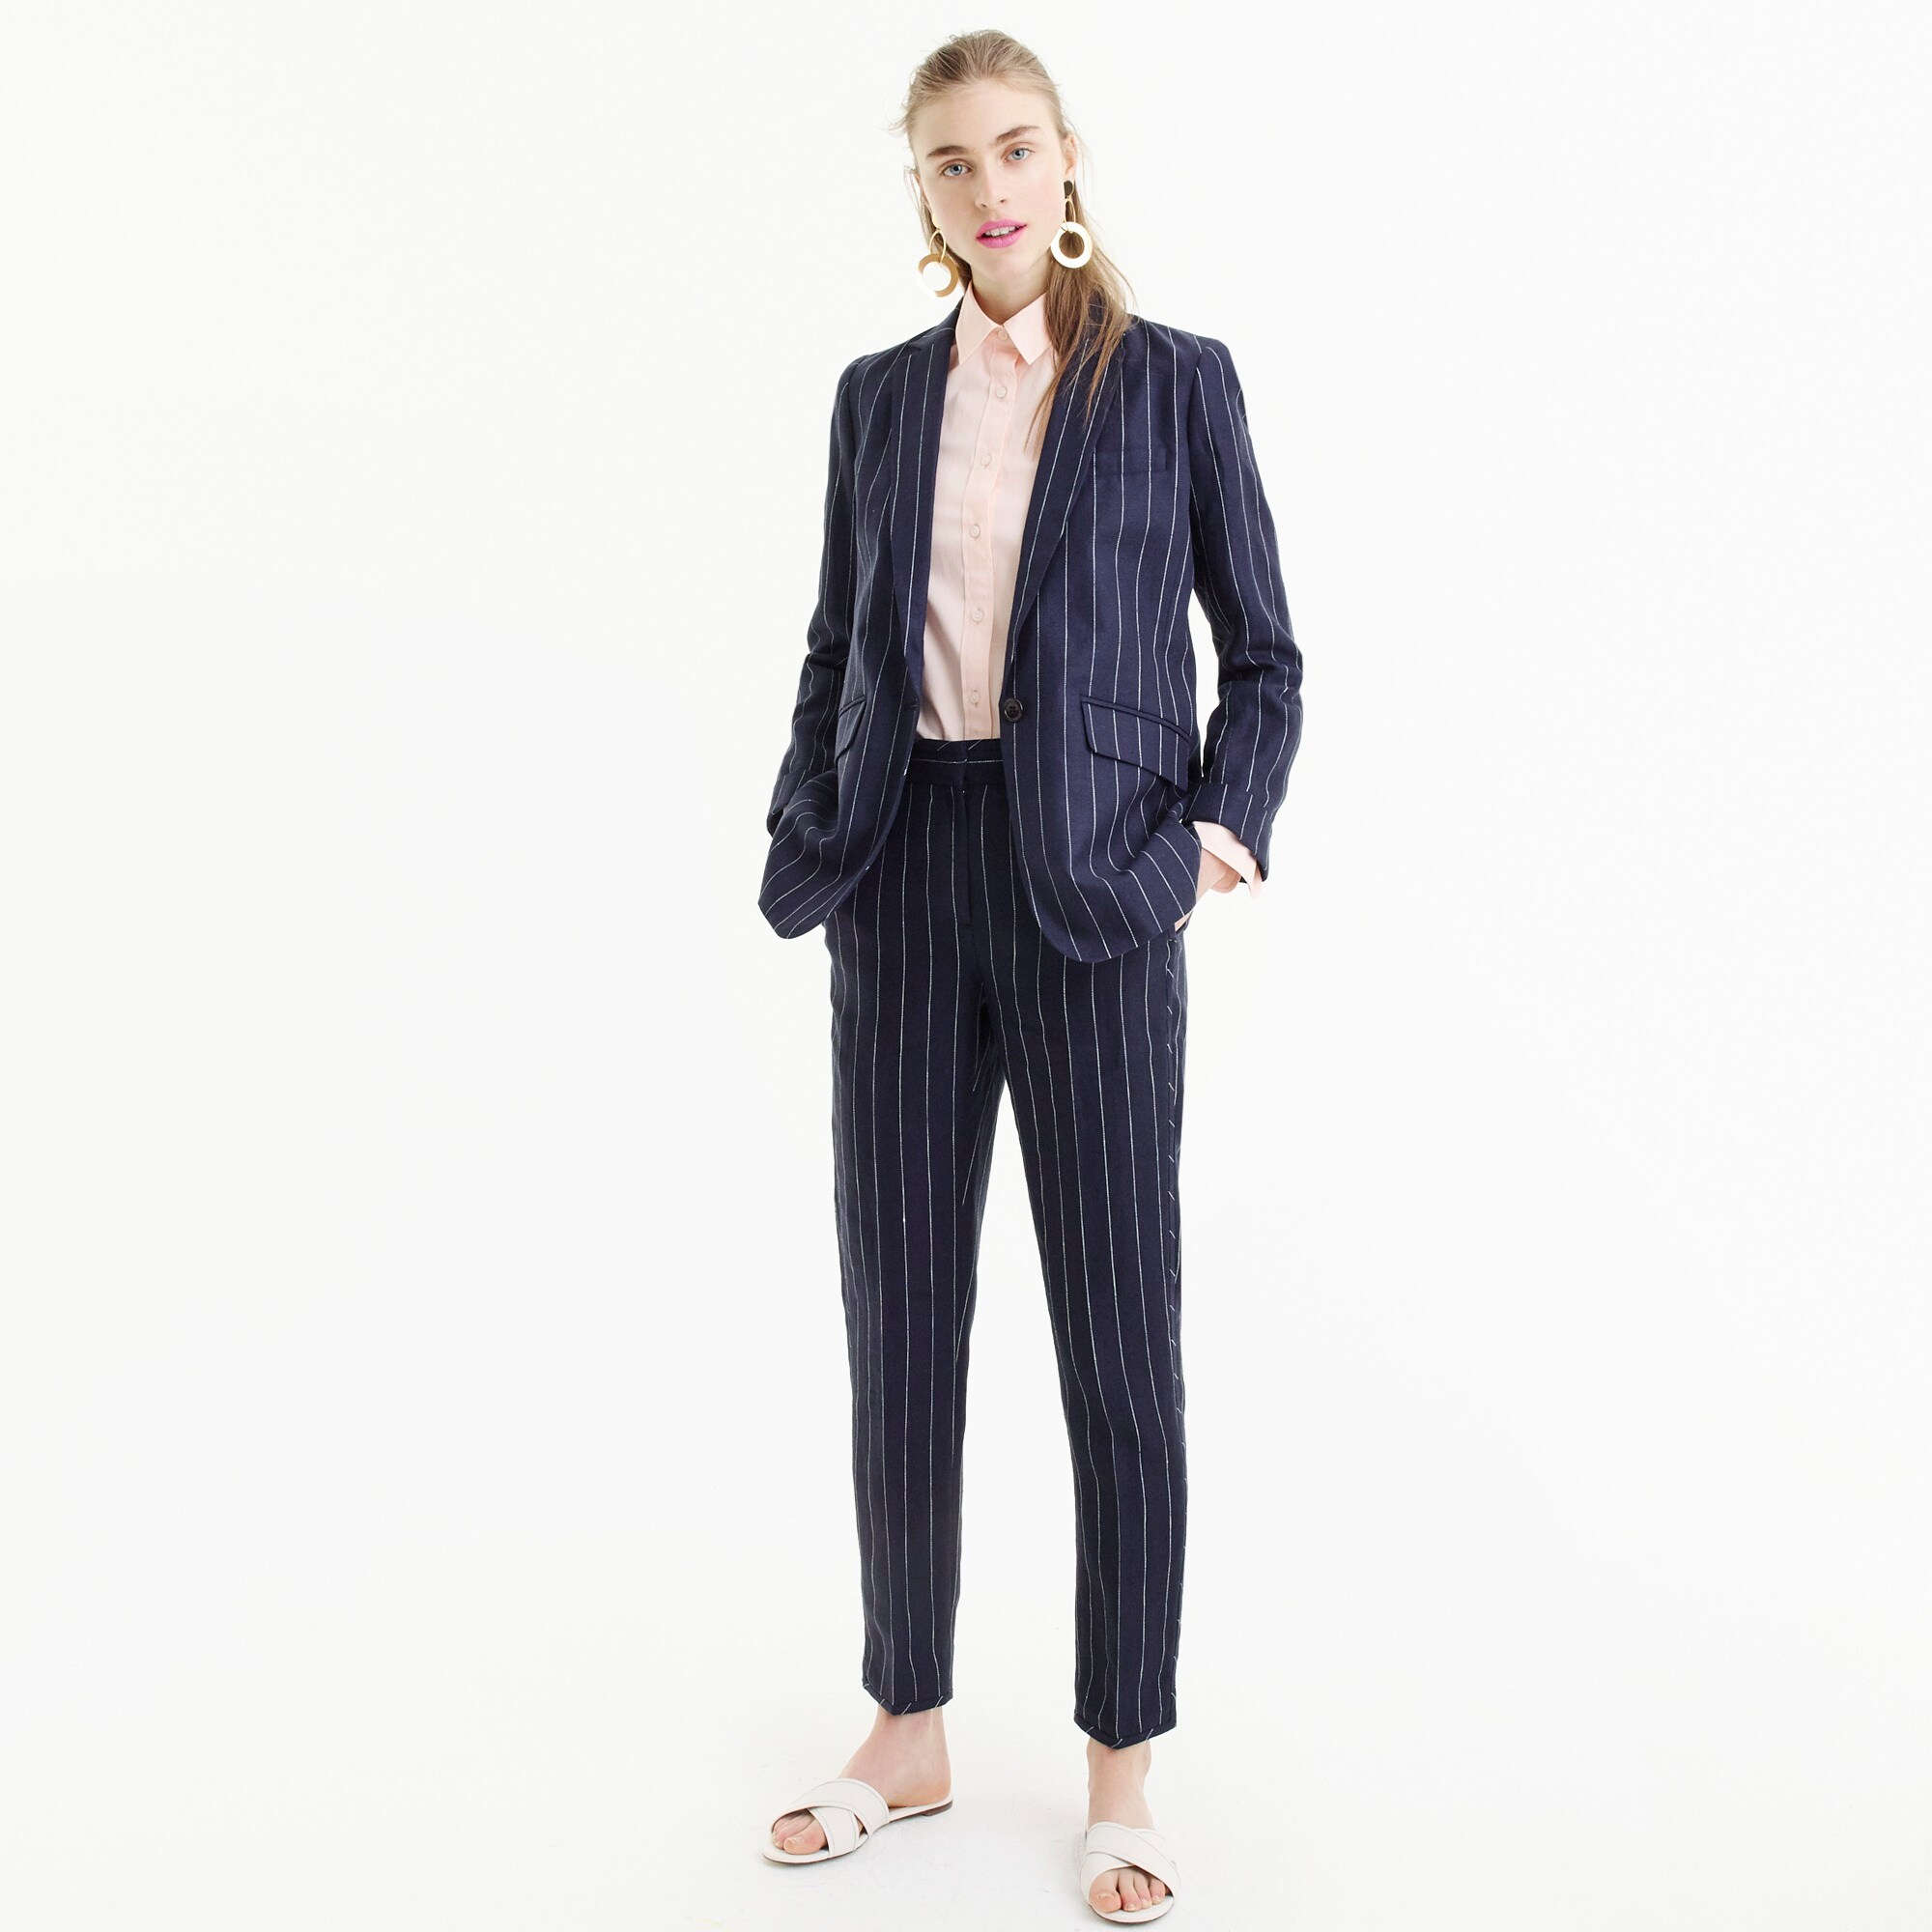 Image 1 for Tall boy blazer in pinstriped linen